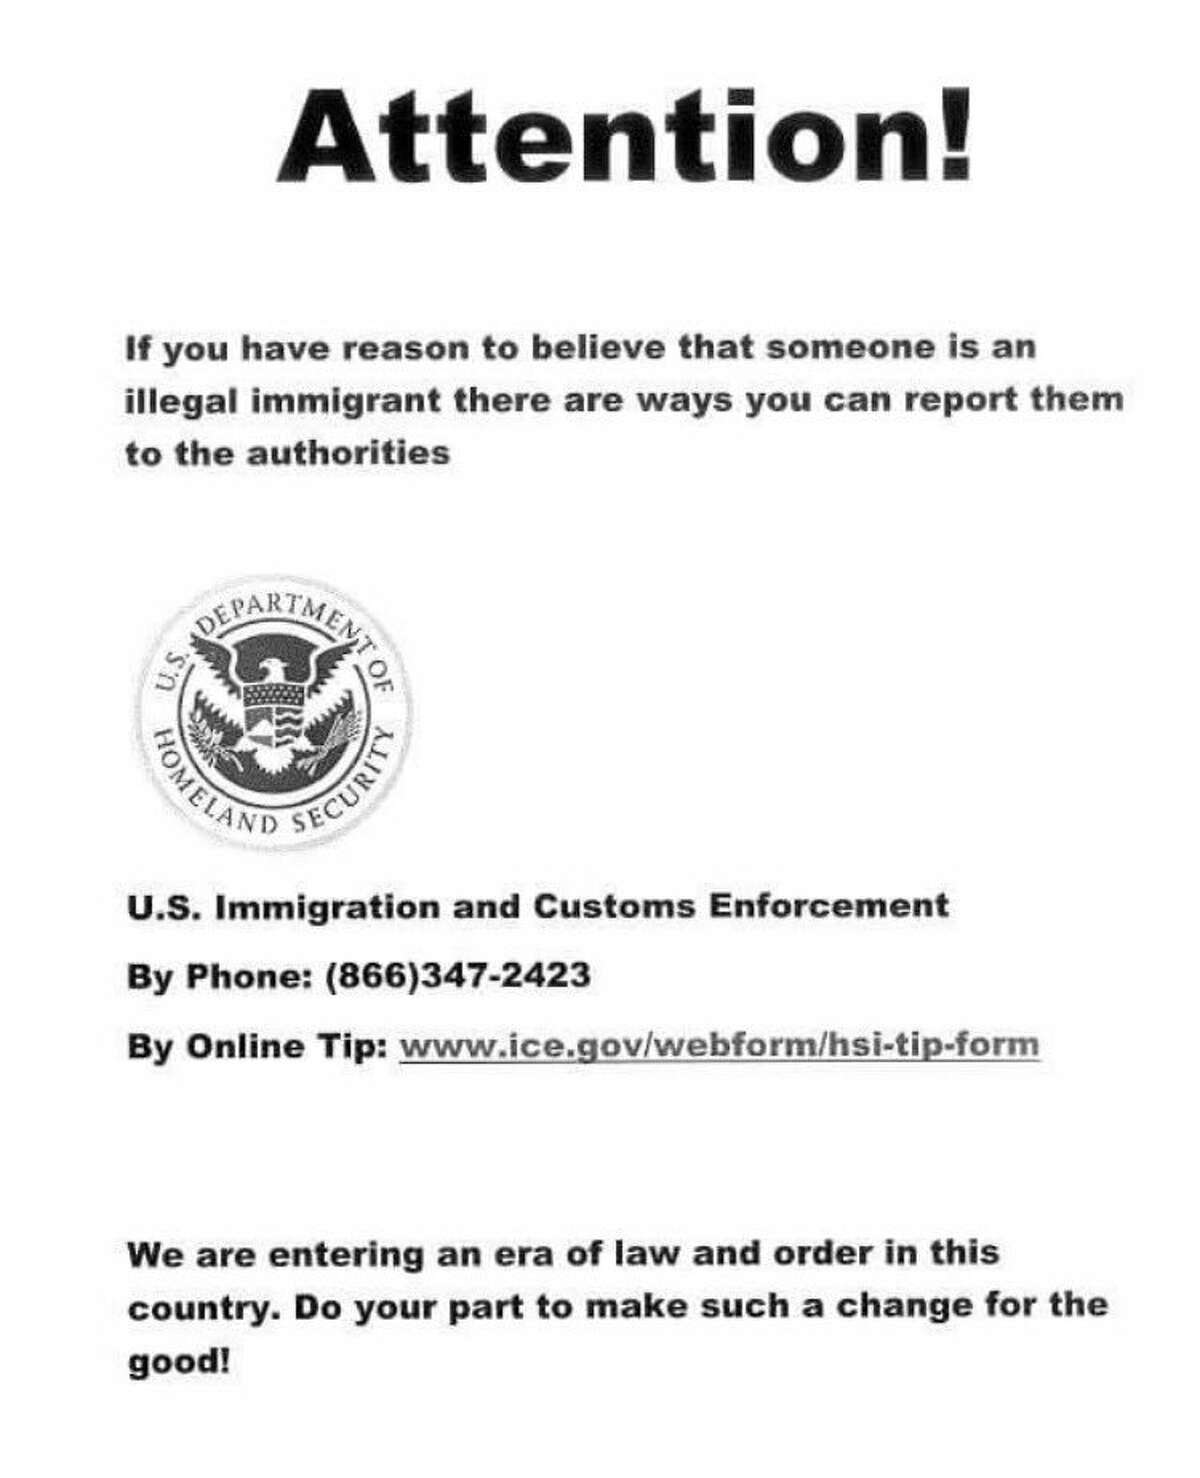 A copy of fliers found on the campus of Texas State in San Marcos.